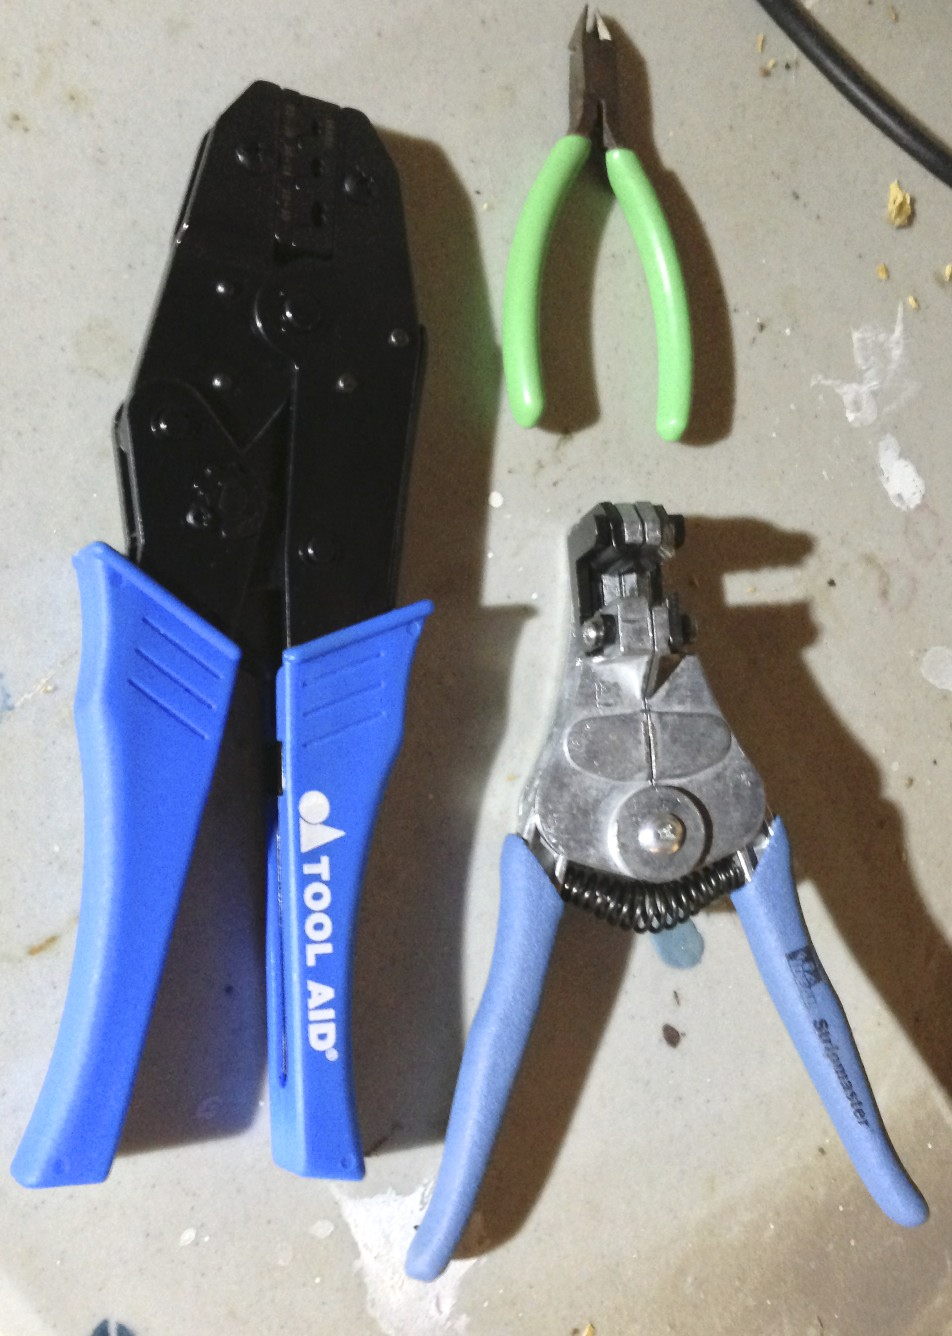 A ratcheting open barrel crimp tool (left). wire cutters (top) and wire strippers (bottom).